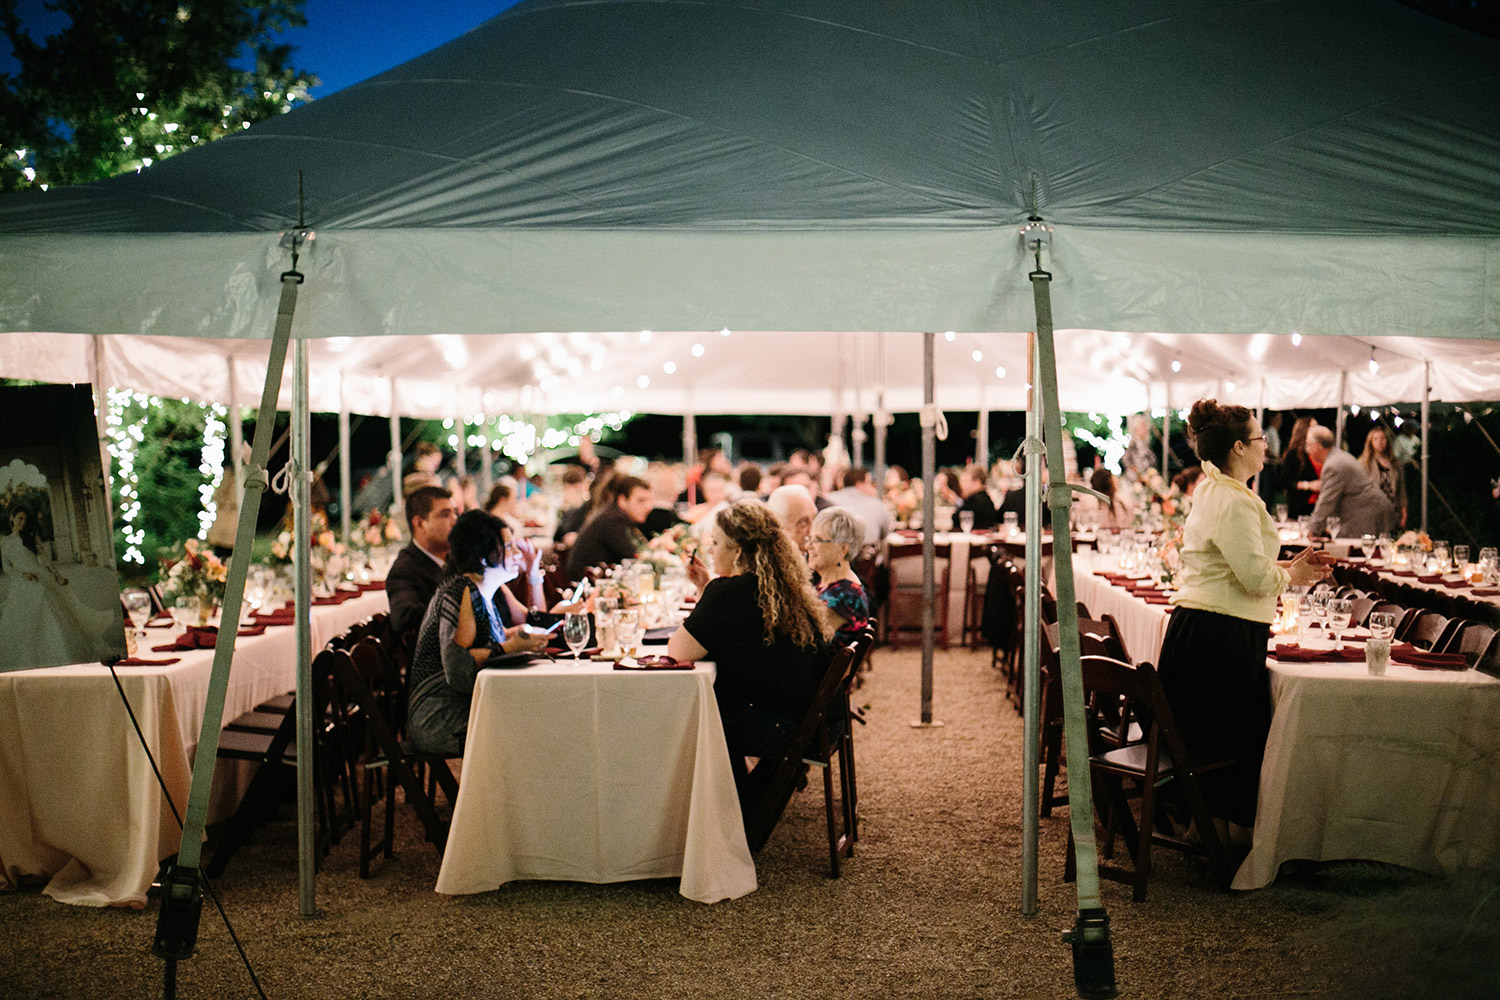 Texas tented wedding at night with hanging cafe lights